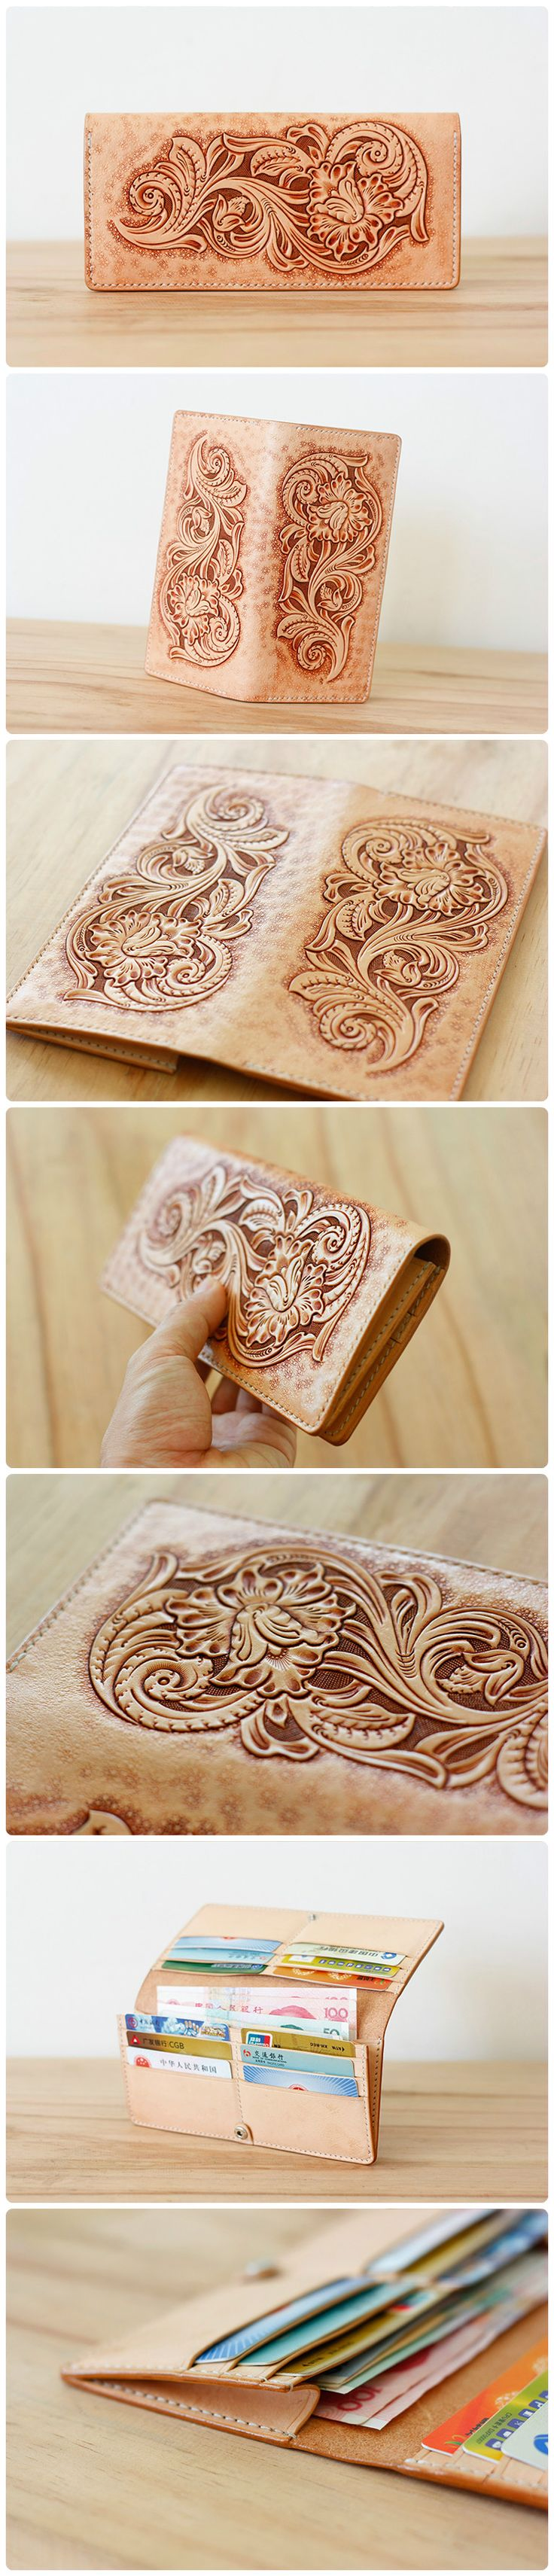 Beautiful wallet. Nice tooling!  #leather #tooling